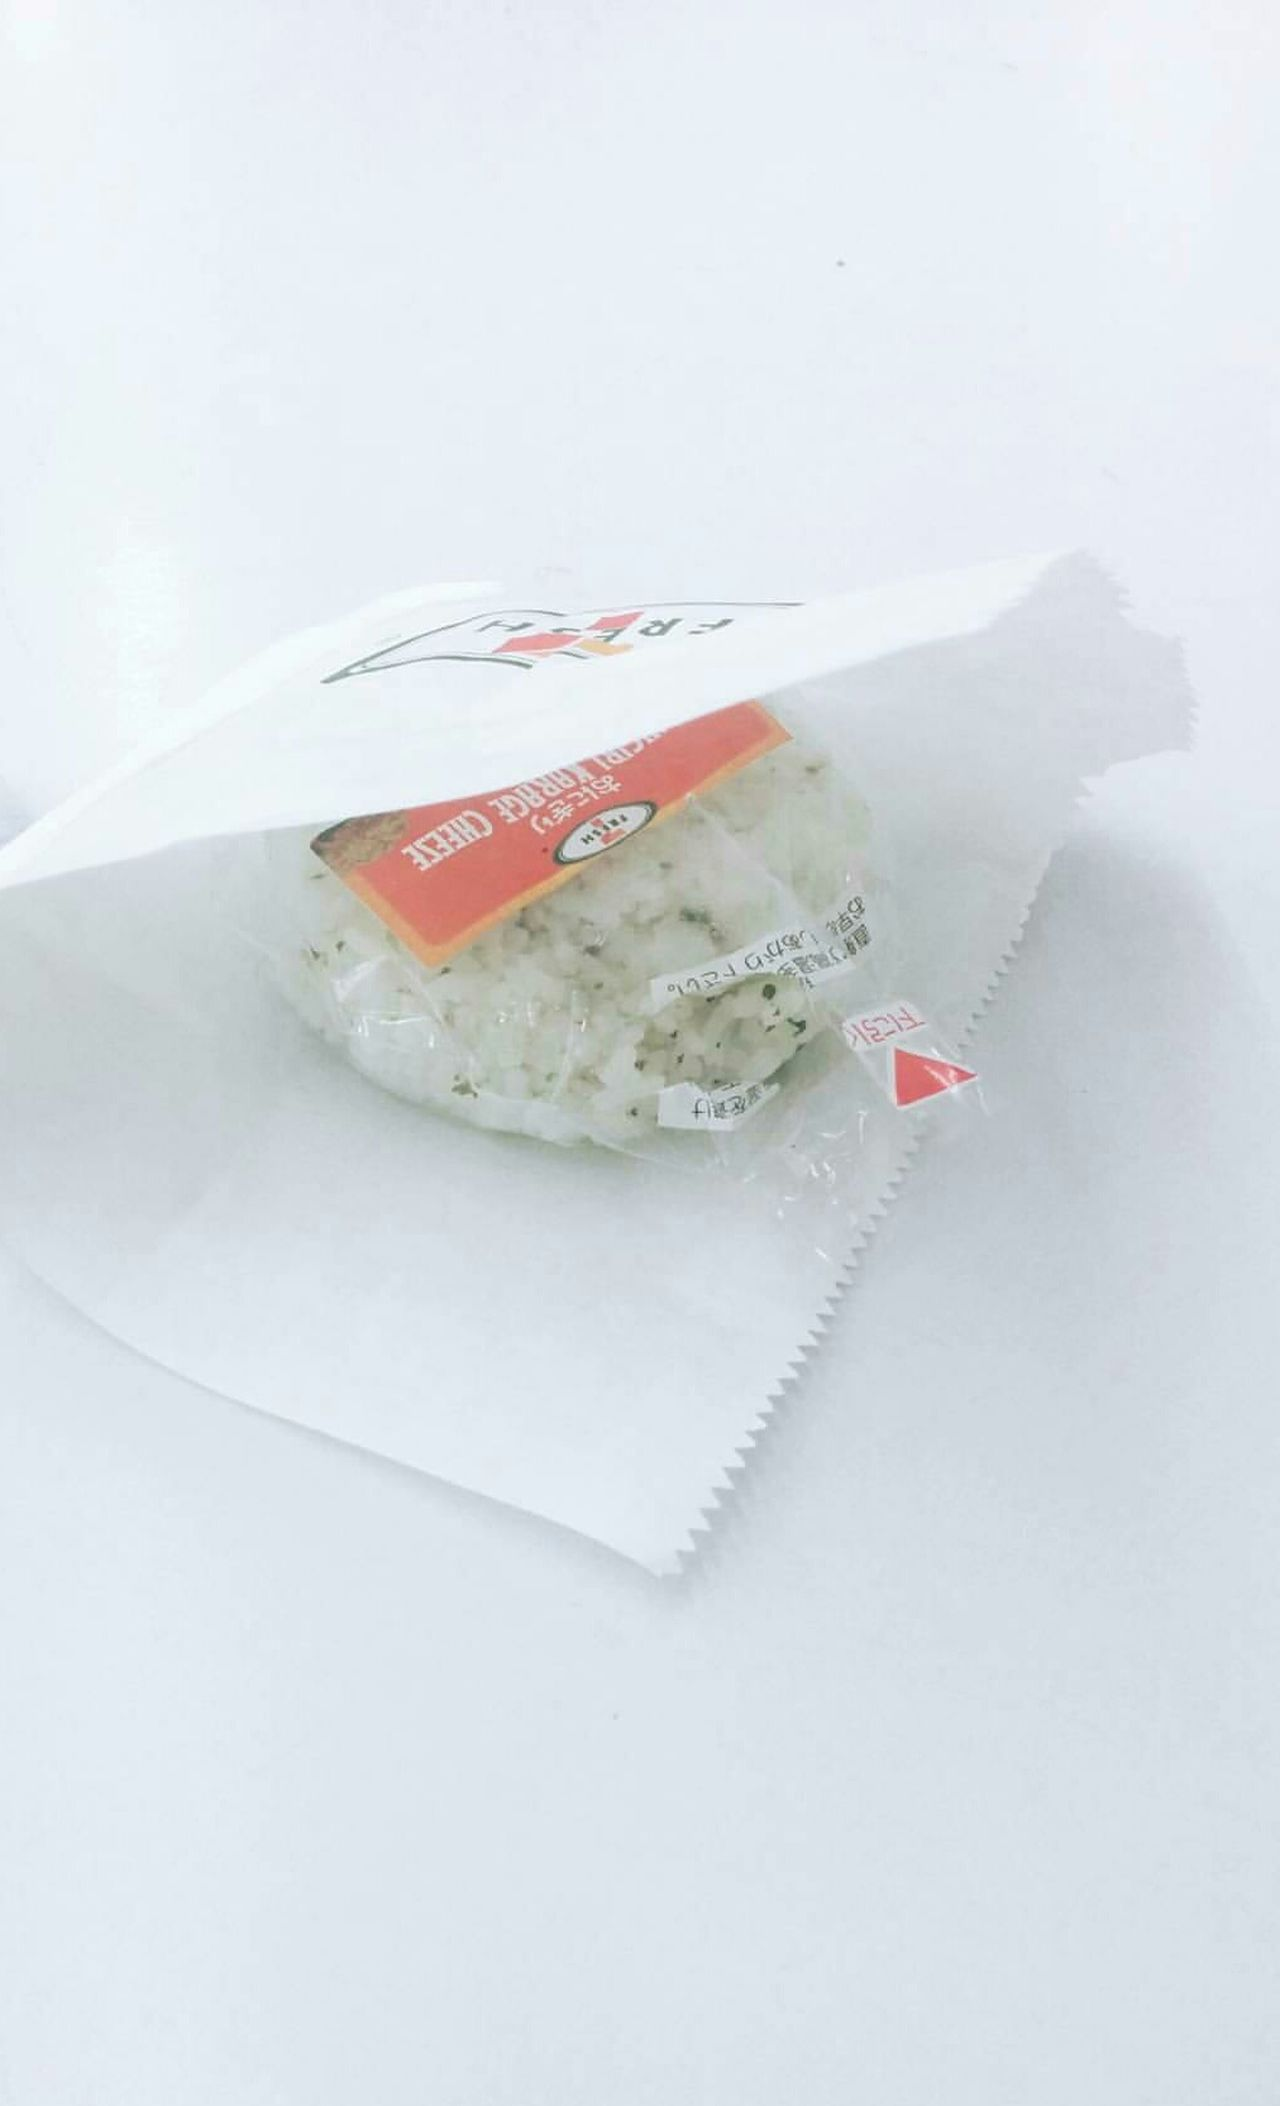 7/11 Japan Japanese Food Asianfood Onigiri Rice Convenience Food Asia Cuisine Convenience Store White Background Close-up No People Studio Shot White Background Close-up No People Indoors  Splashing Day